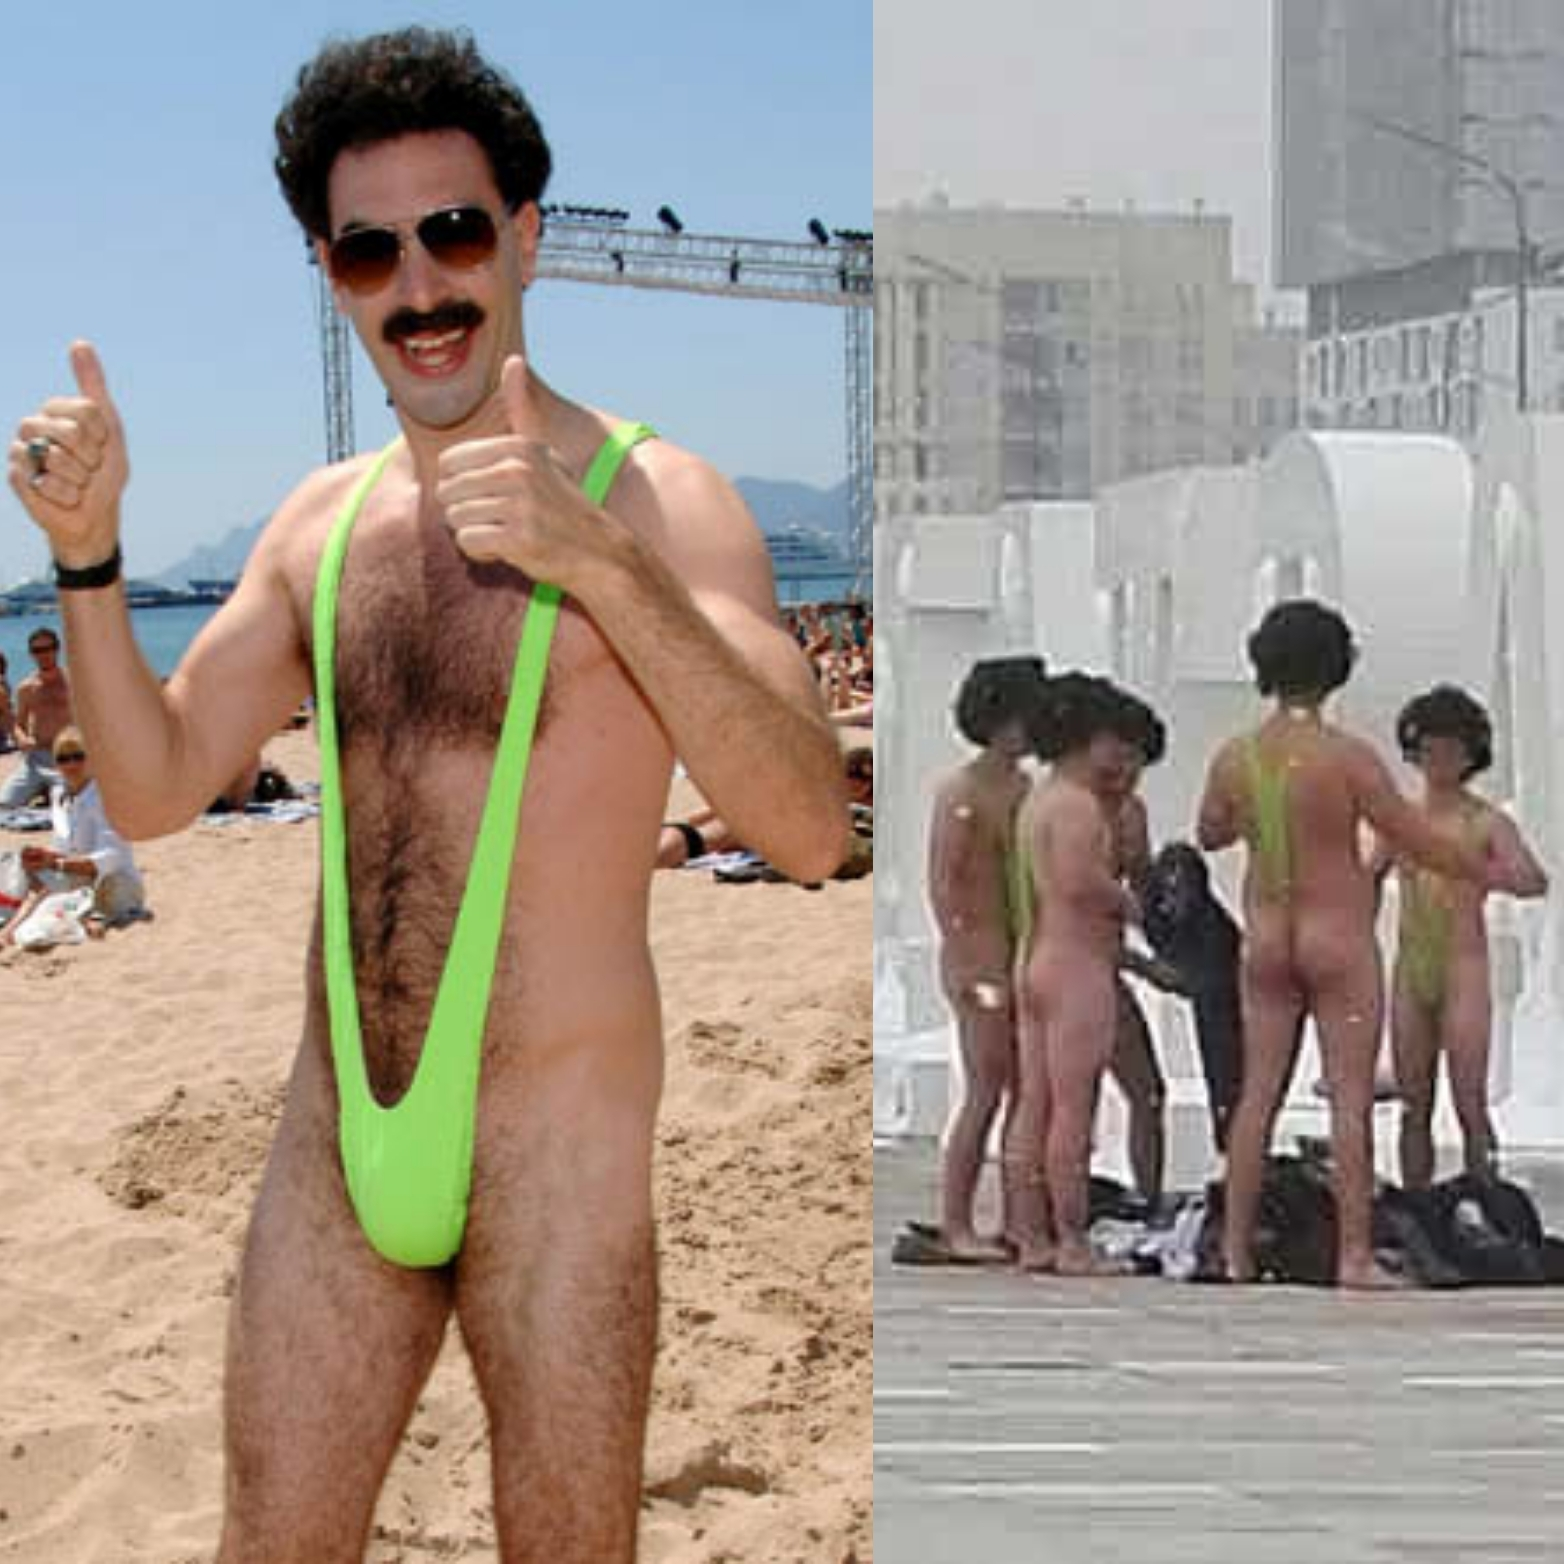 Sacha Baron Cohen offers to bail out Czech tourists - detained for wearing 'Borat' mankini's in public - Czech Points